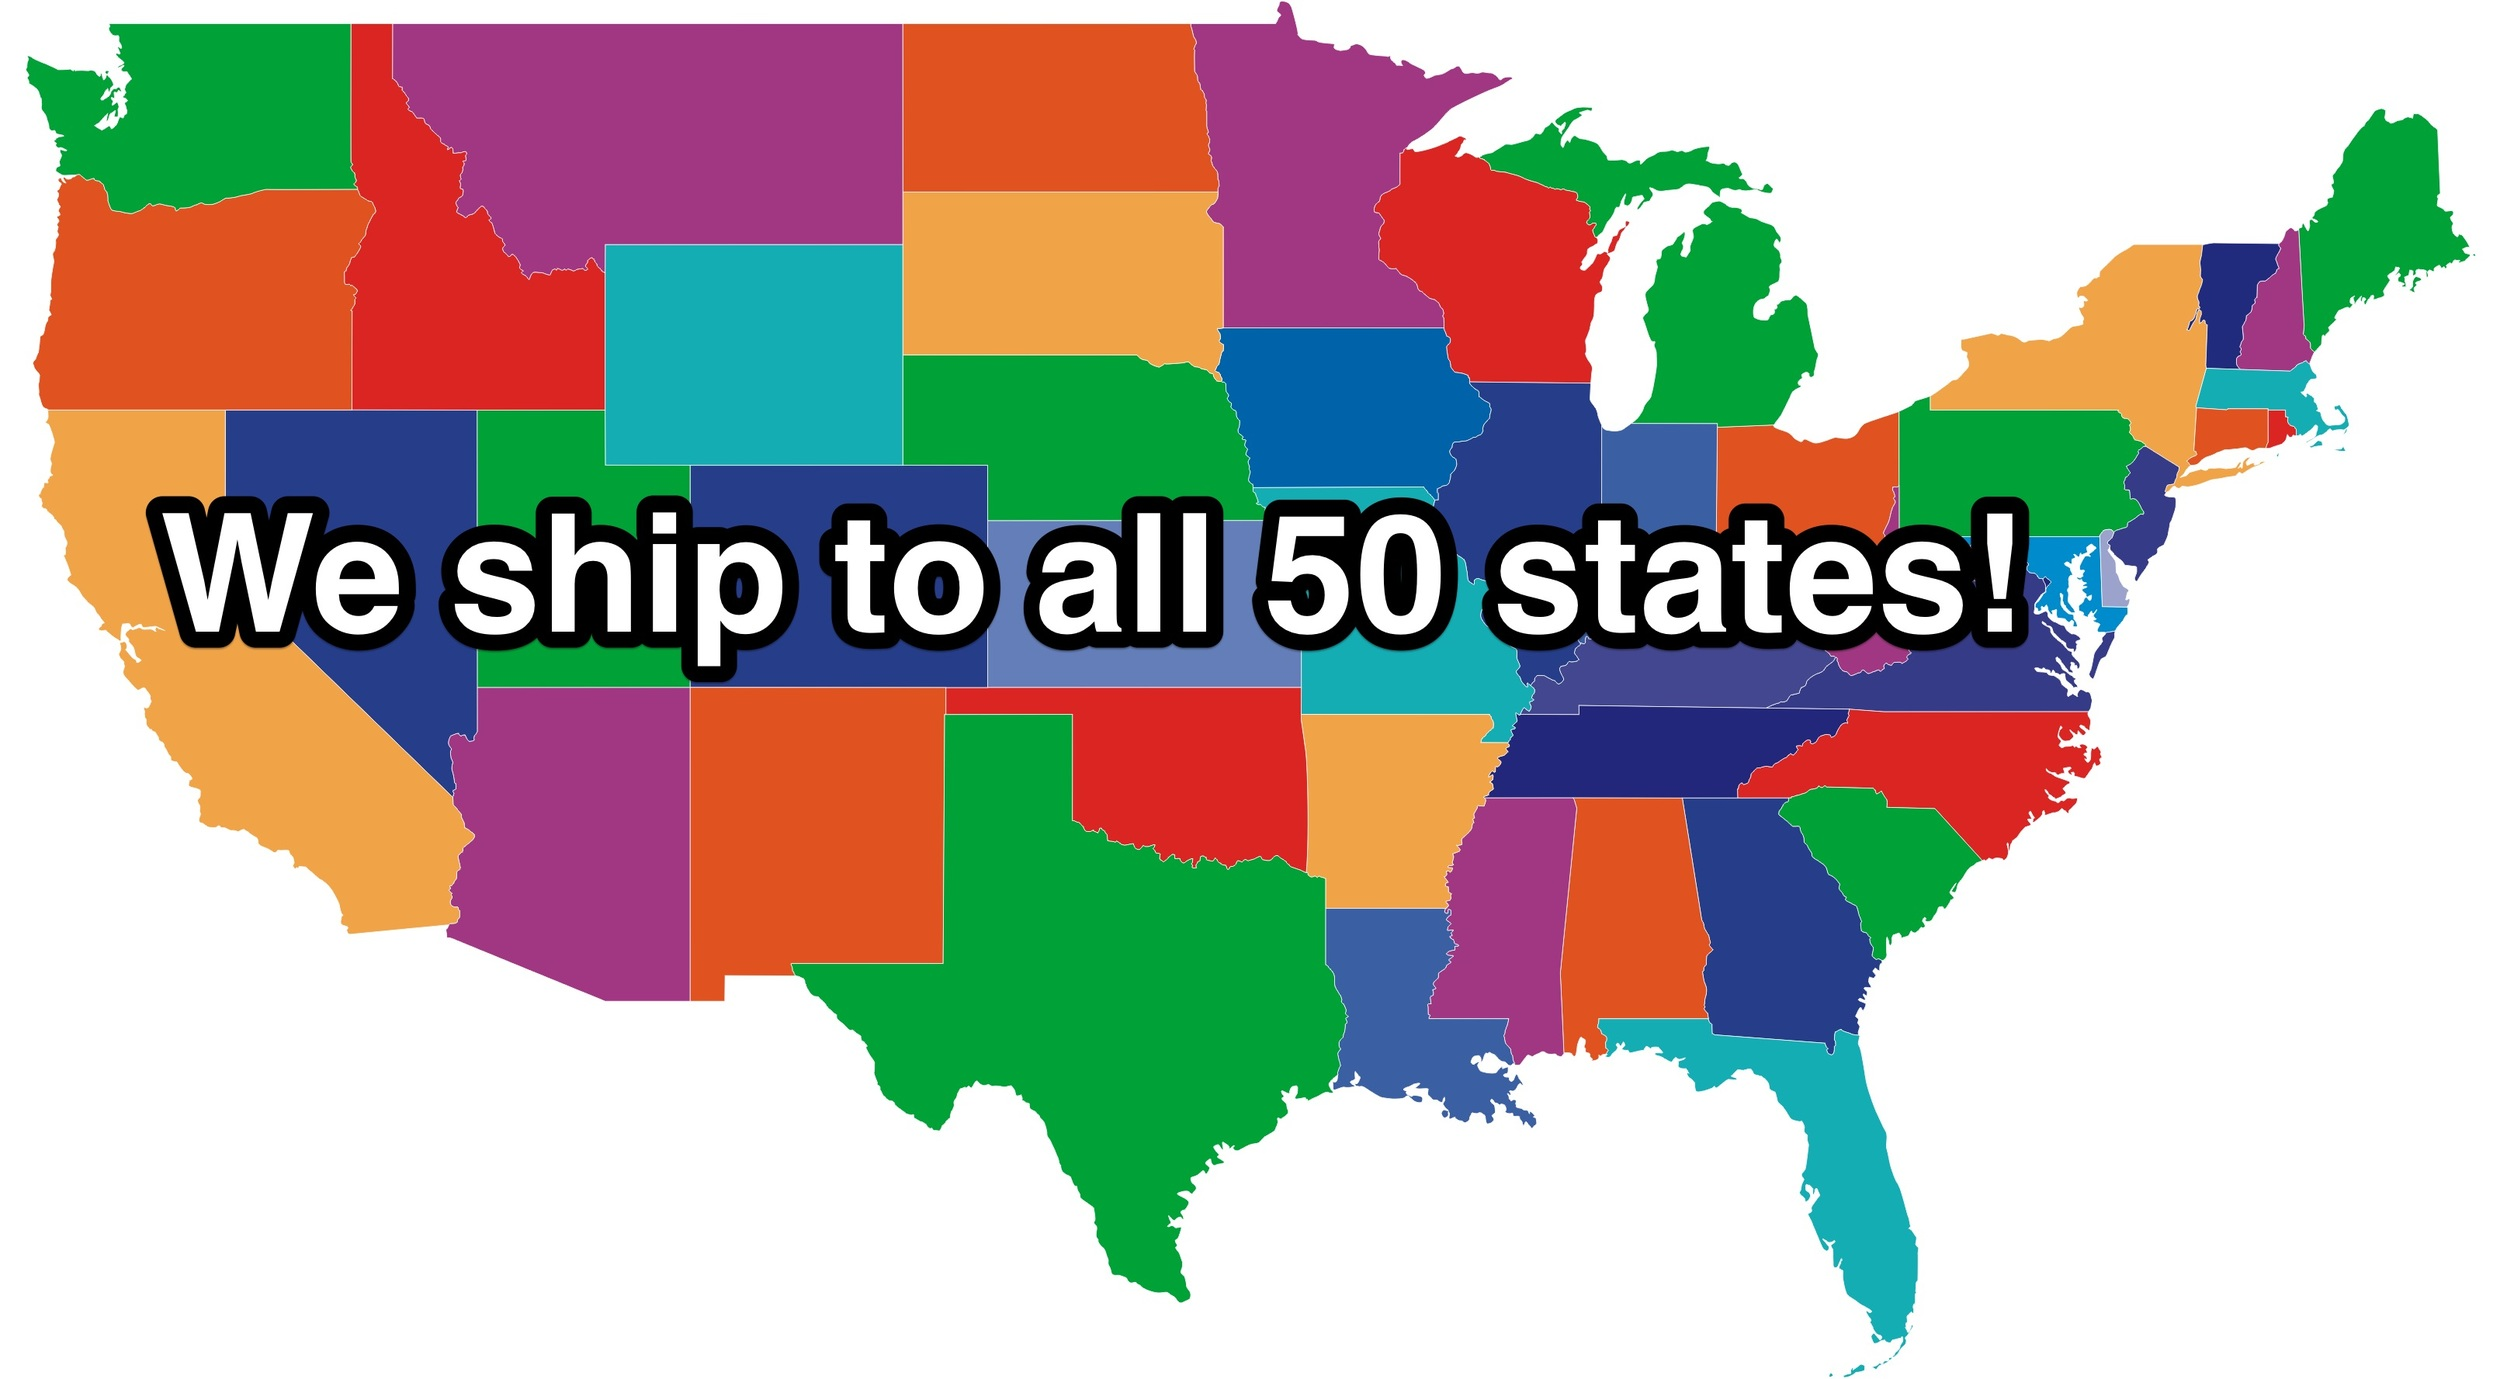 Yes! We ship to all 50 states (even Alaska and Hawaii).